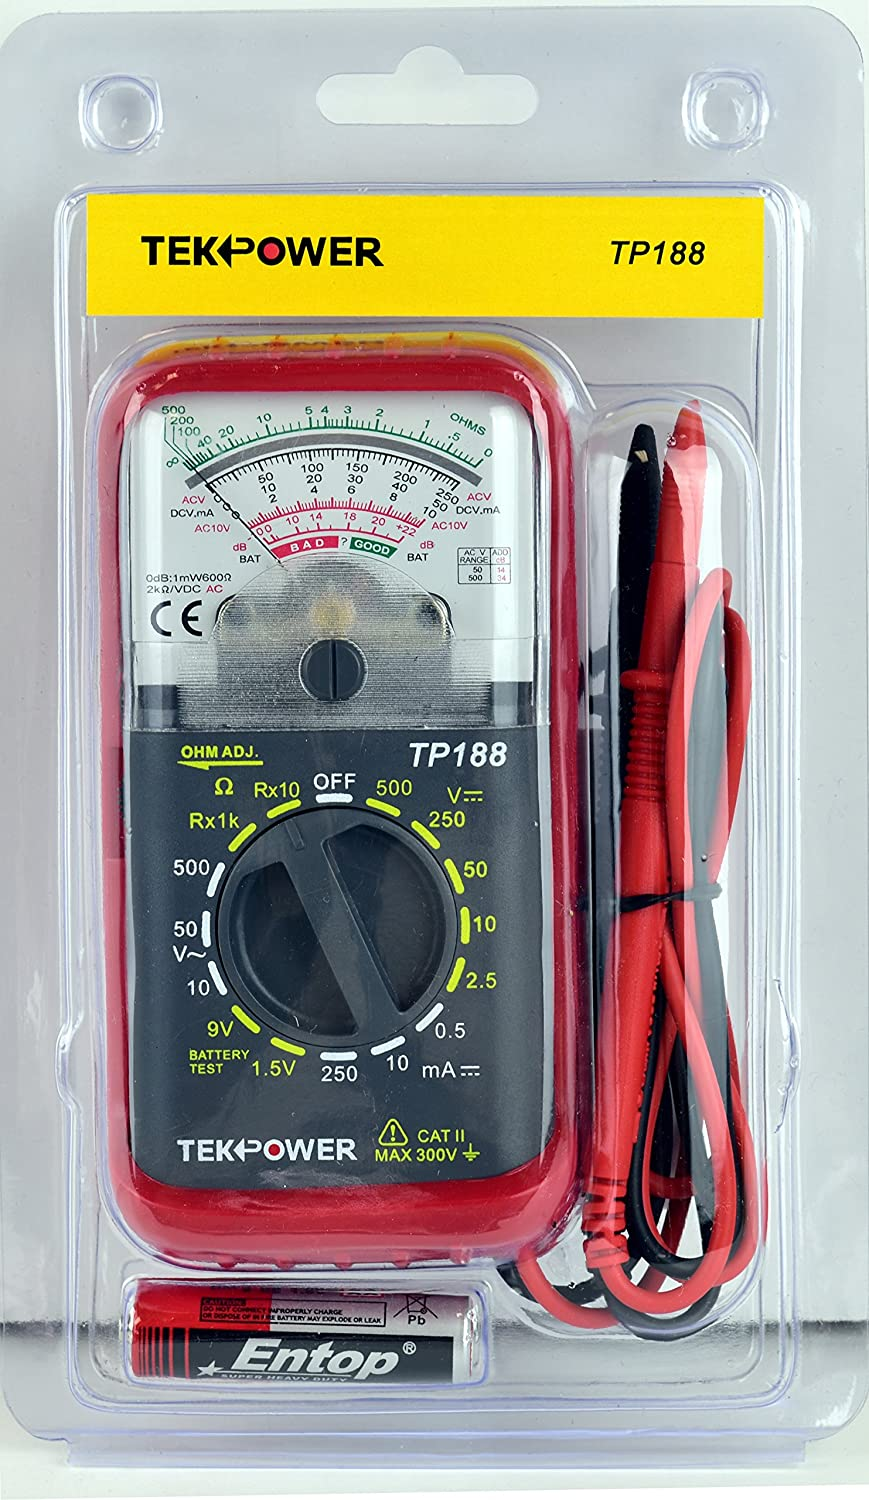 Tekpower TP188 Pocket-size Analog Multimeter with Built -in